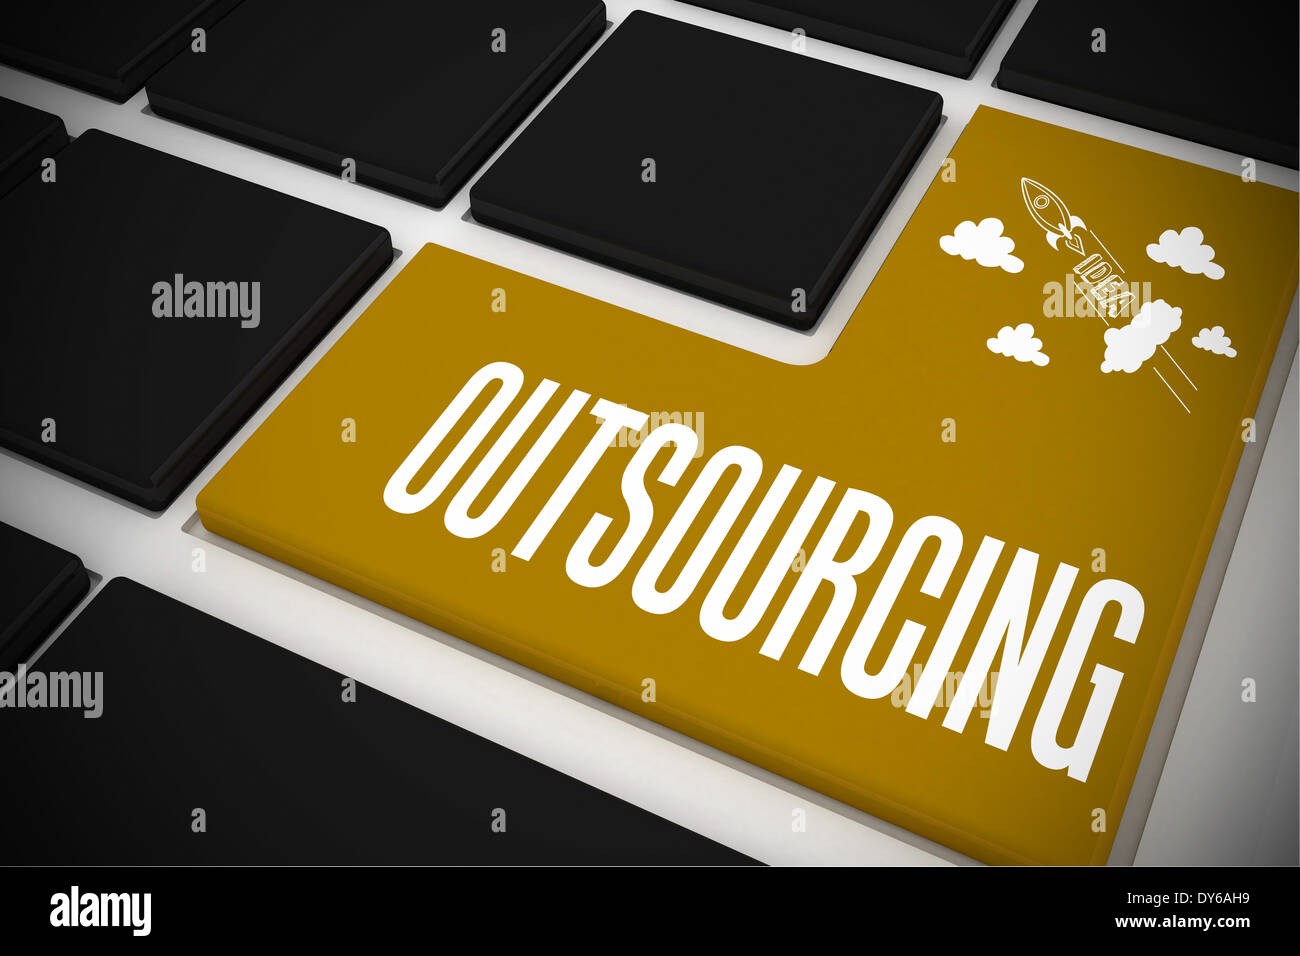 Outsourcing on black keyboard with yellow key - Stock Image